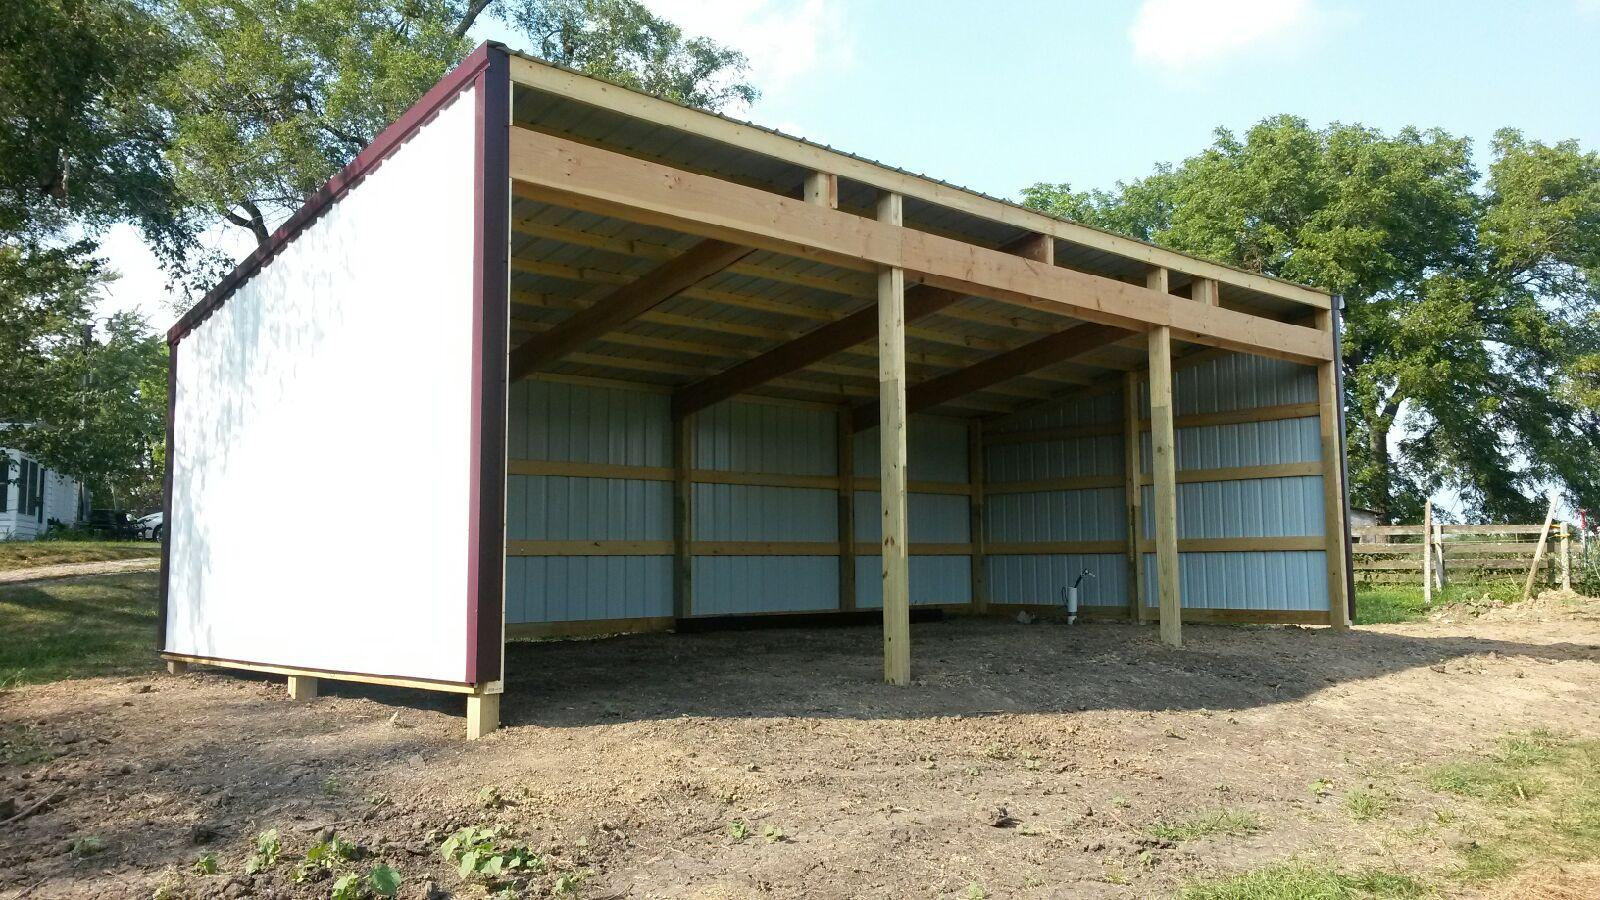 92 lean to pole barn plans barn plans carports a for Pole building designs free